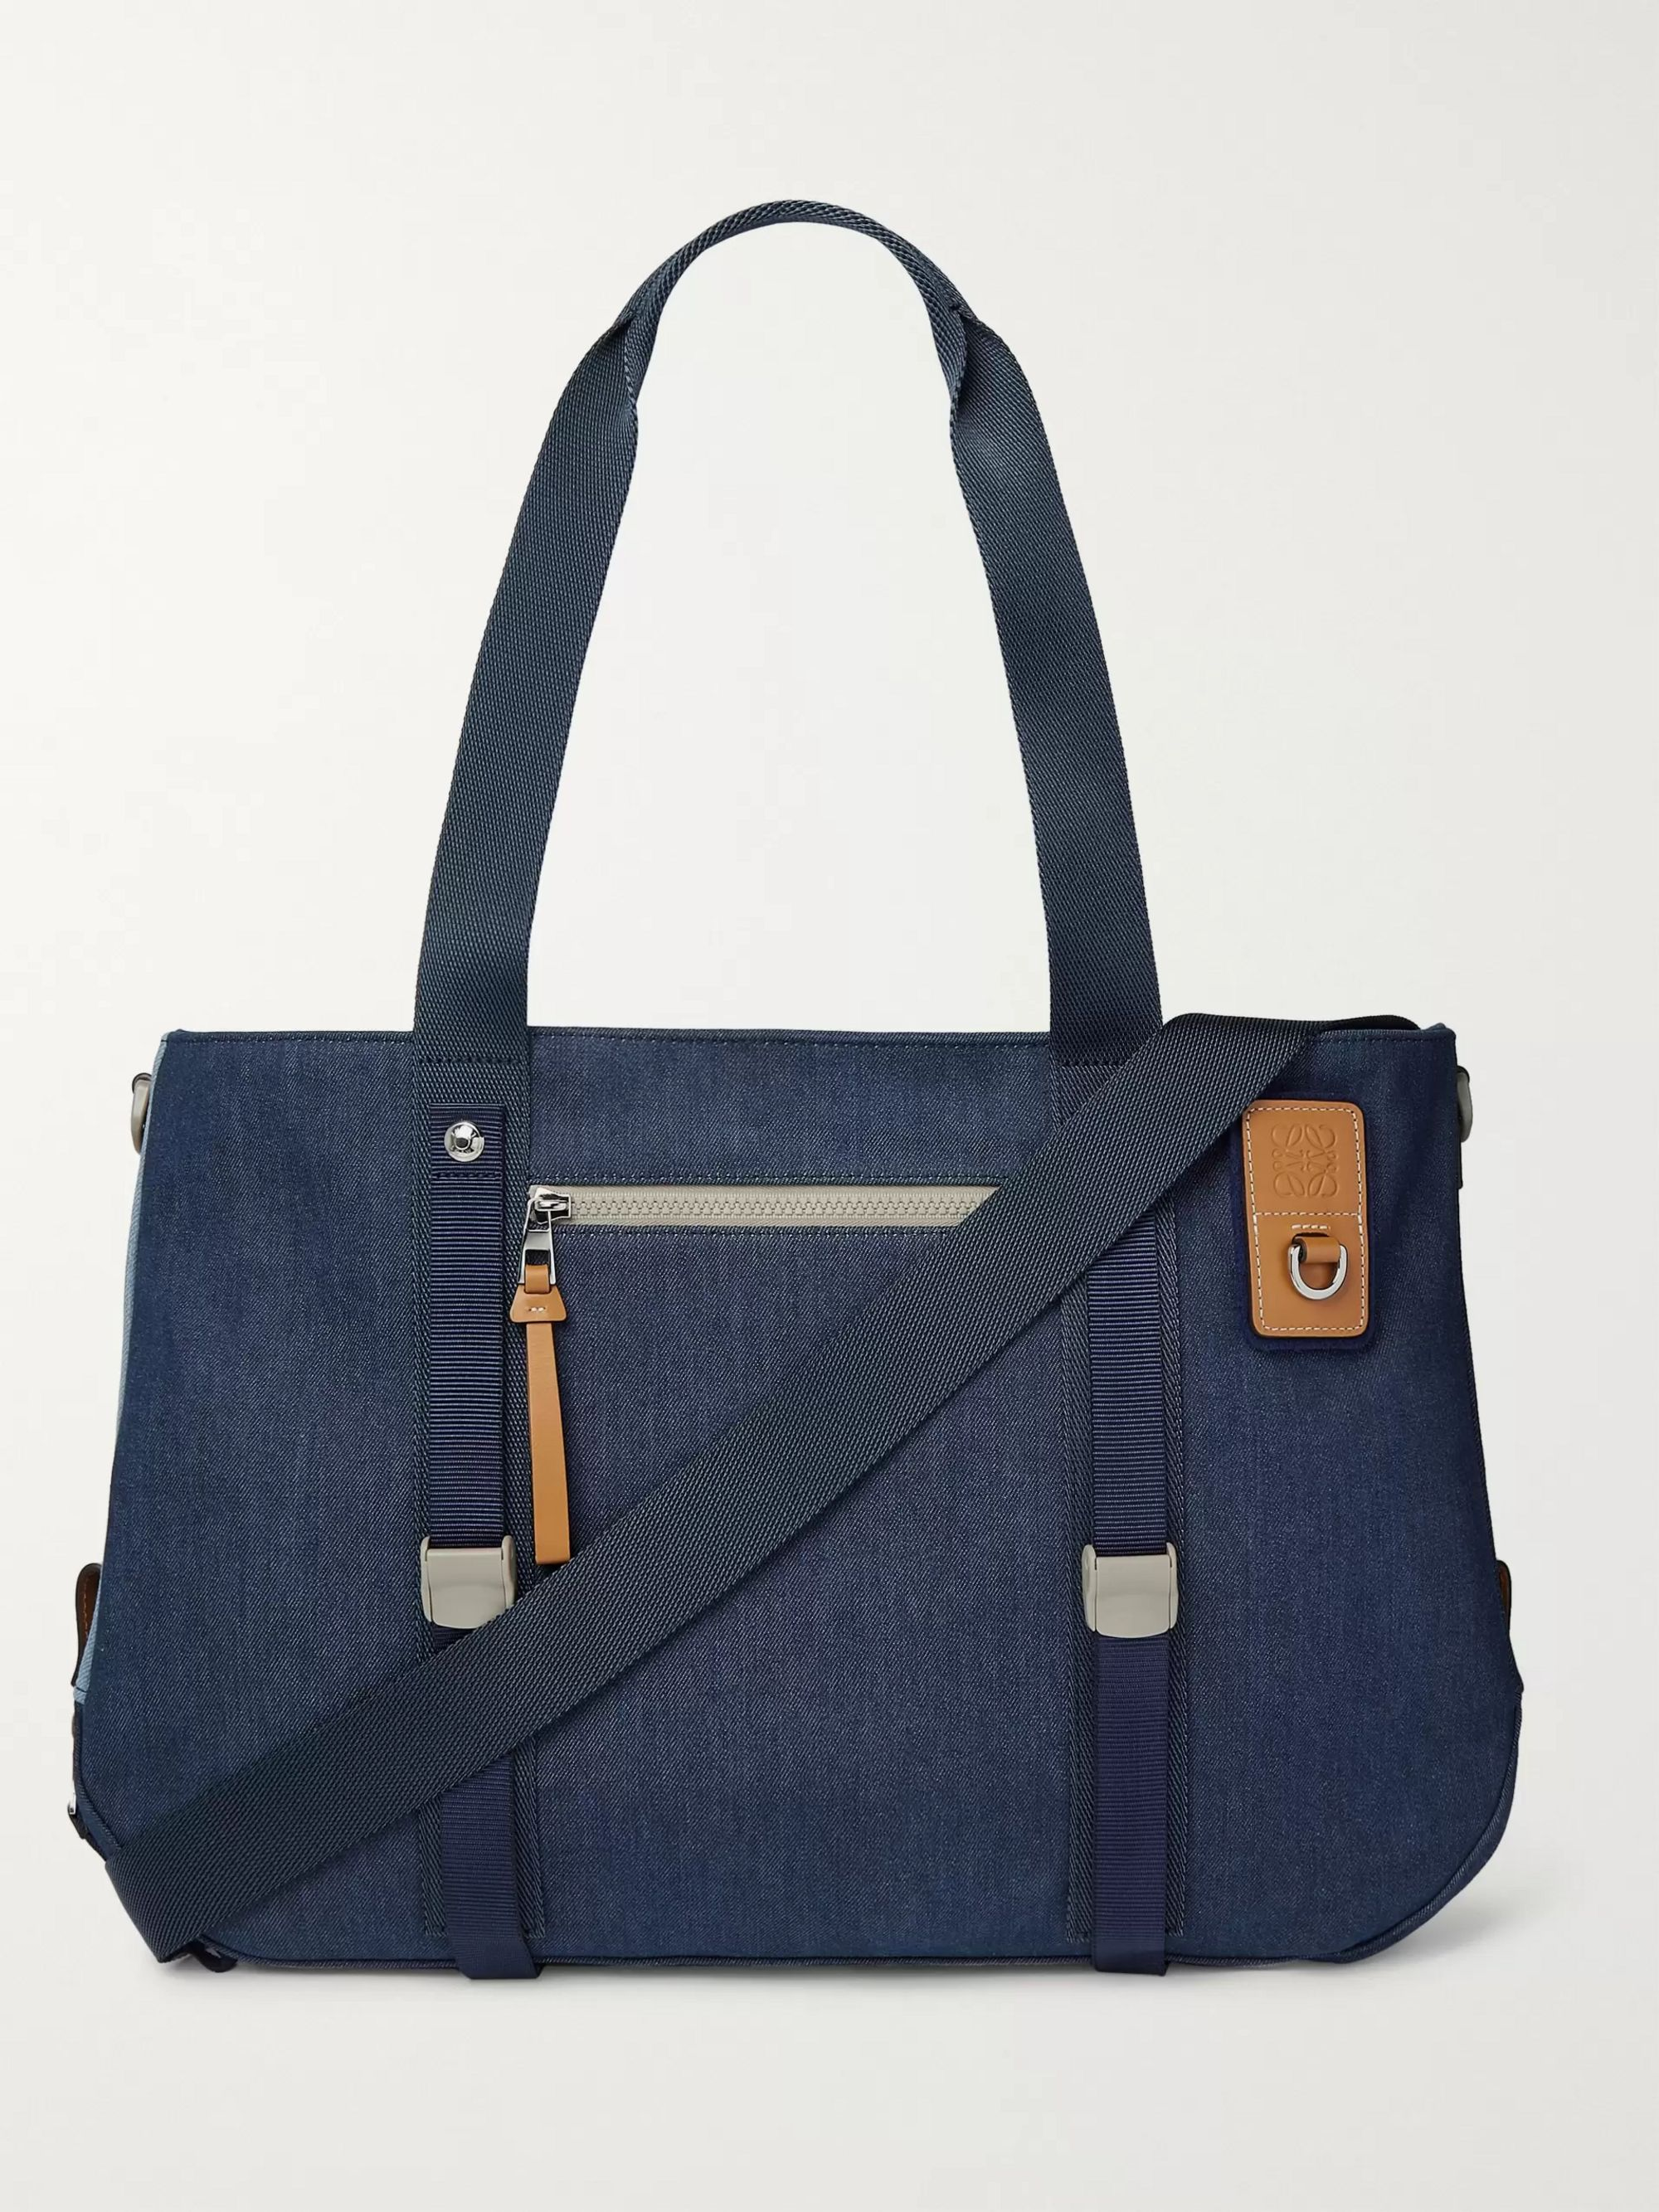 Loewe Eye/LOEWE/Nature Leather-Trimmed Colour-Block Denim Tote Bag